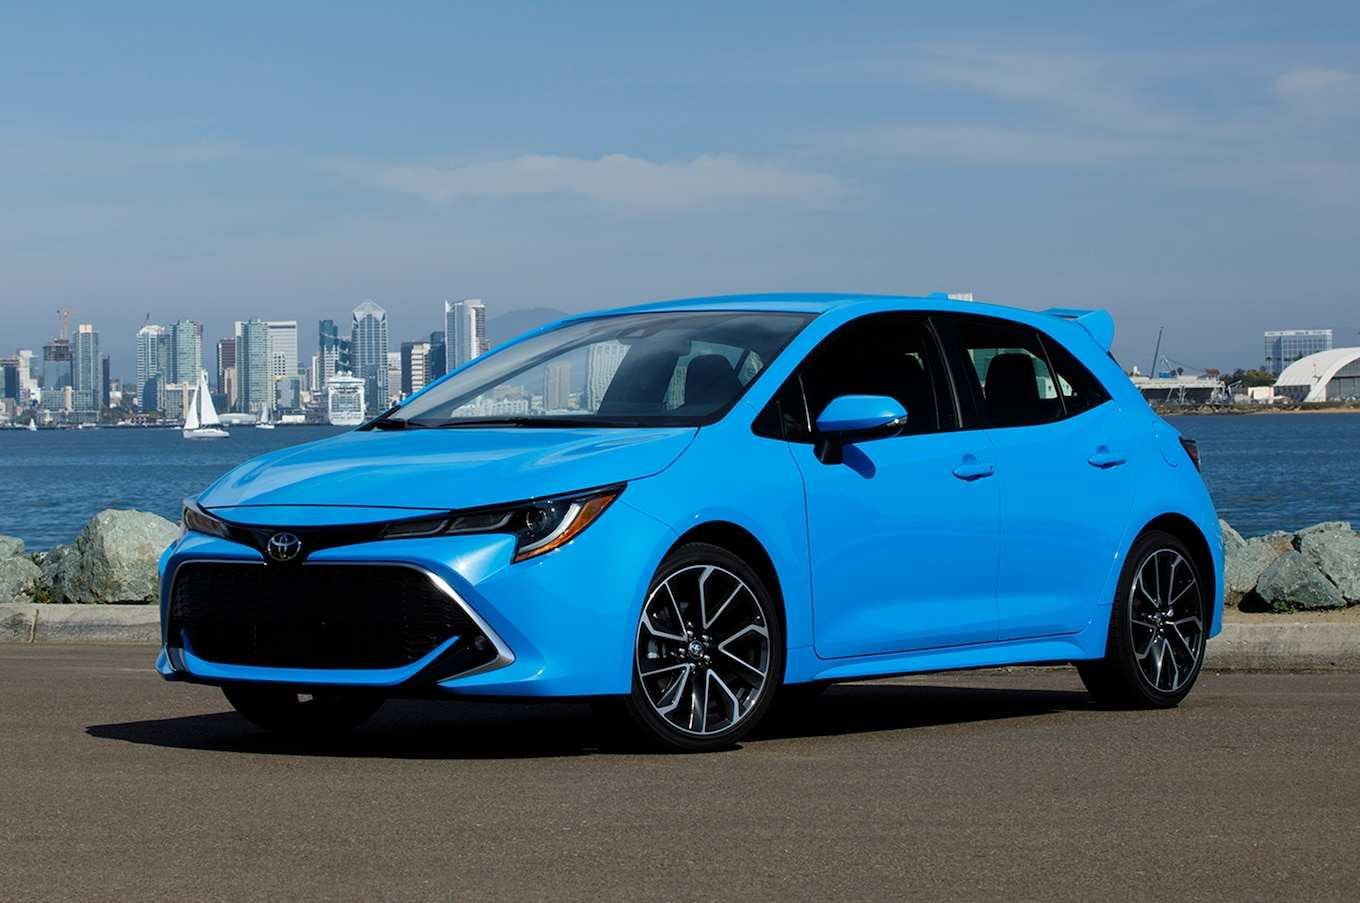 38 Concept of New Sedan Toyota 2019 Overview And Price Style for New Sedan Toyota 2019 Overview And Price